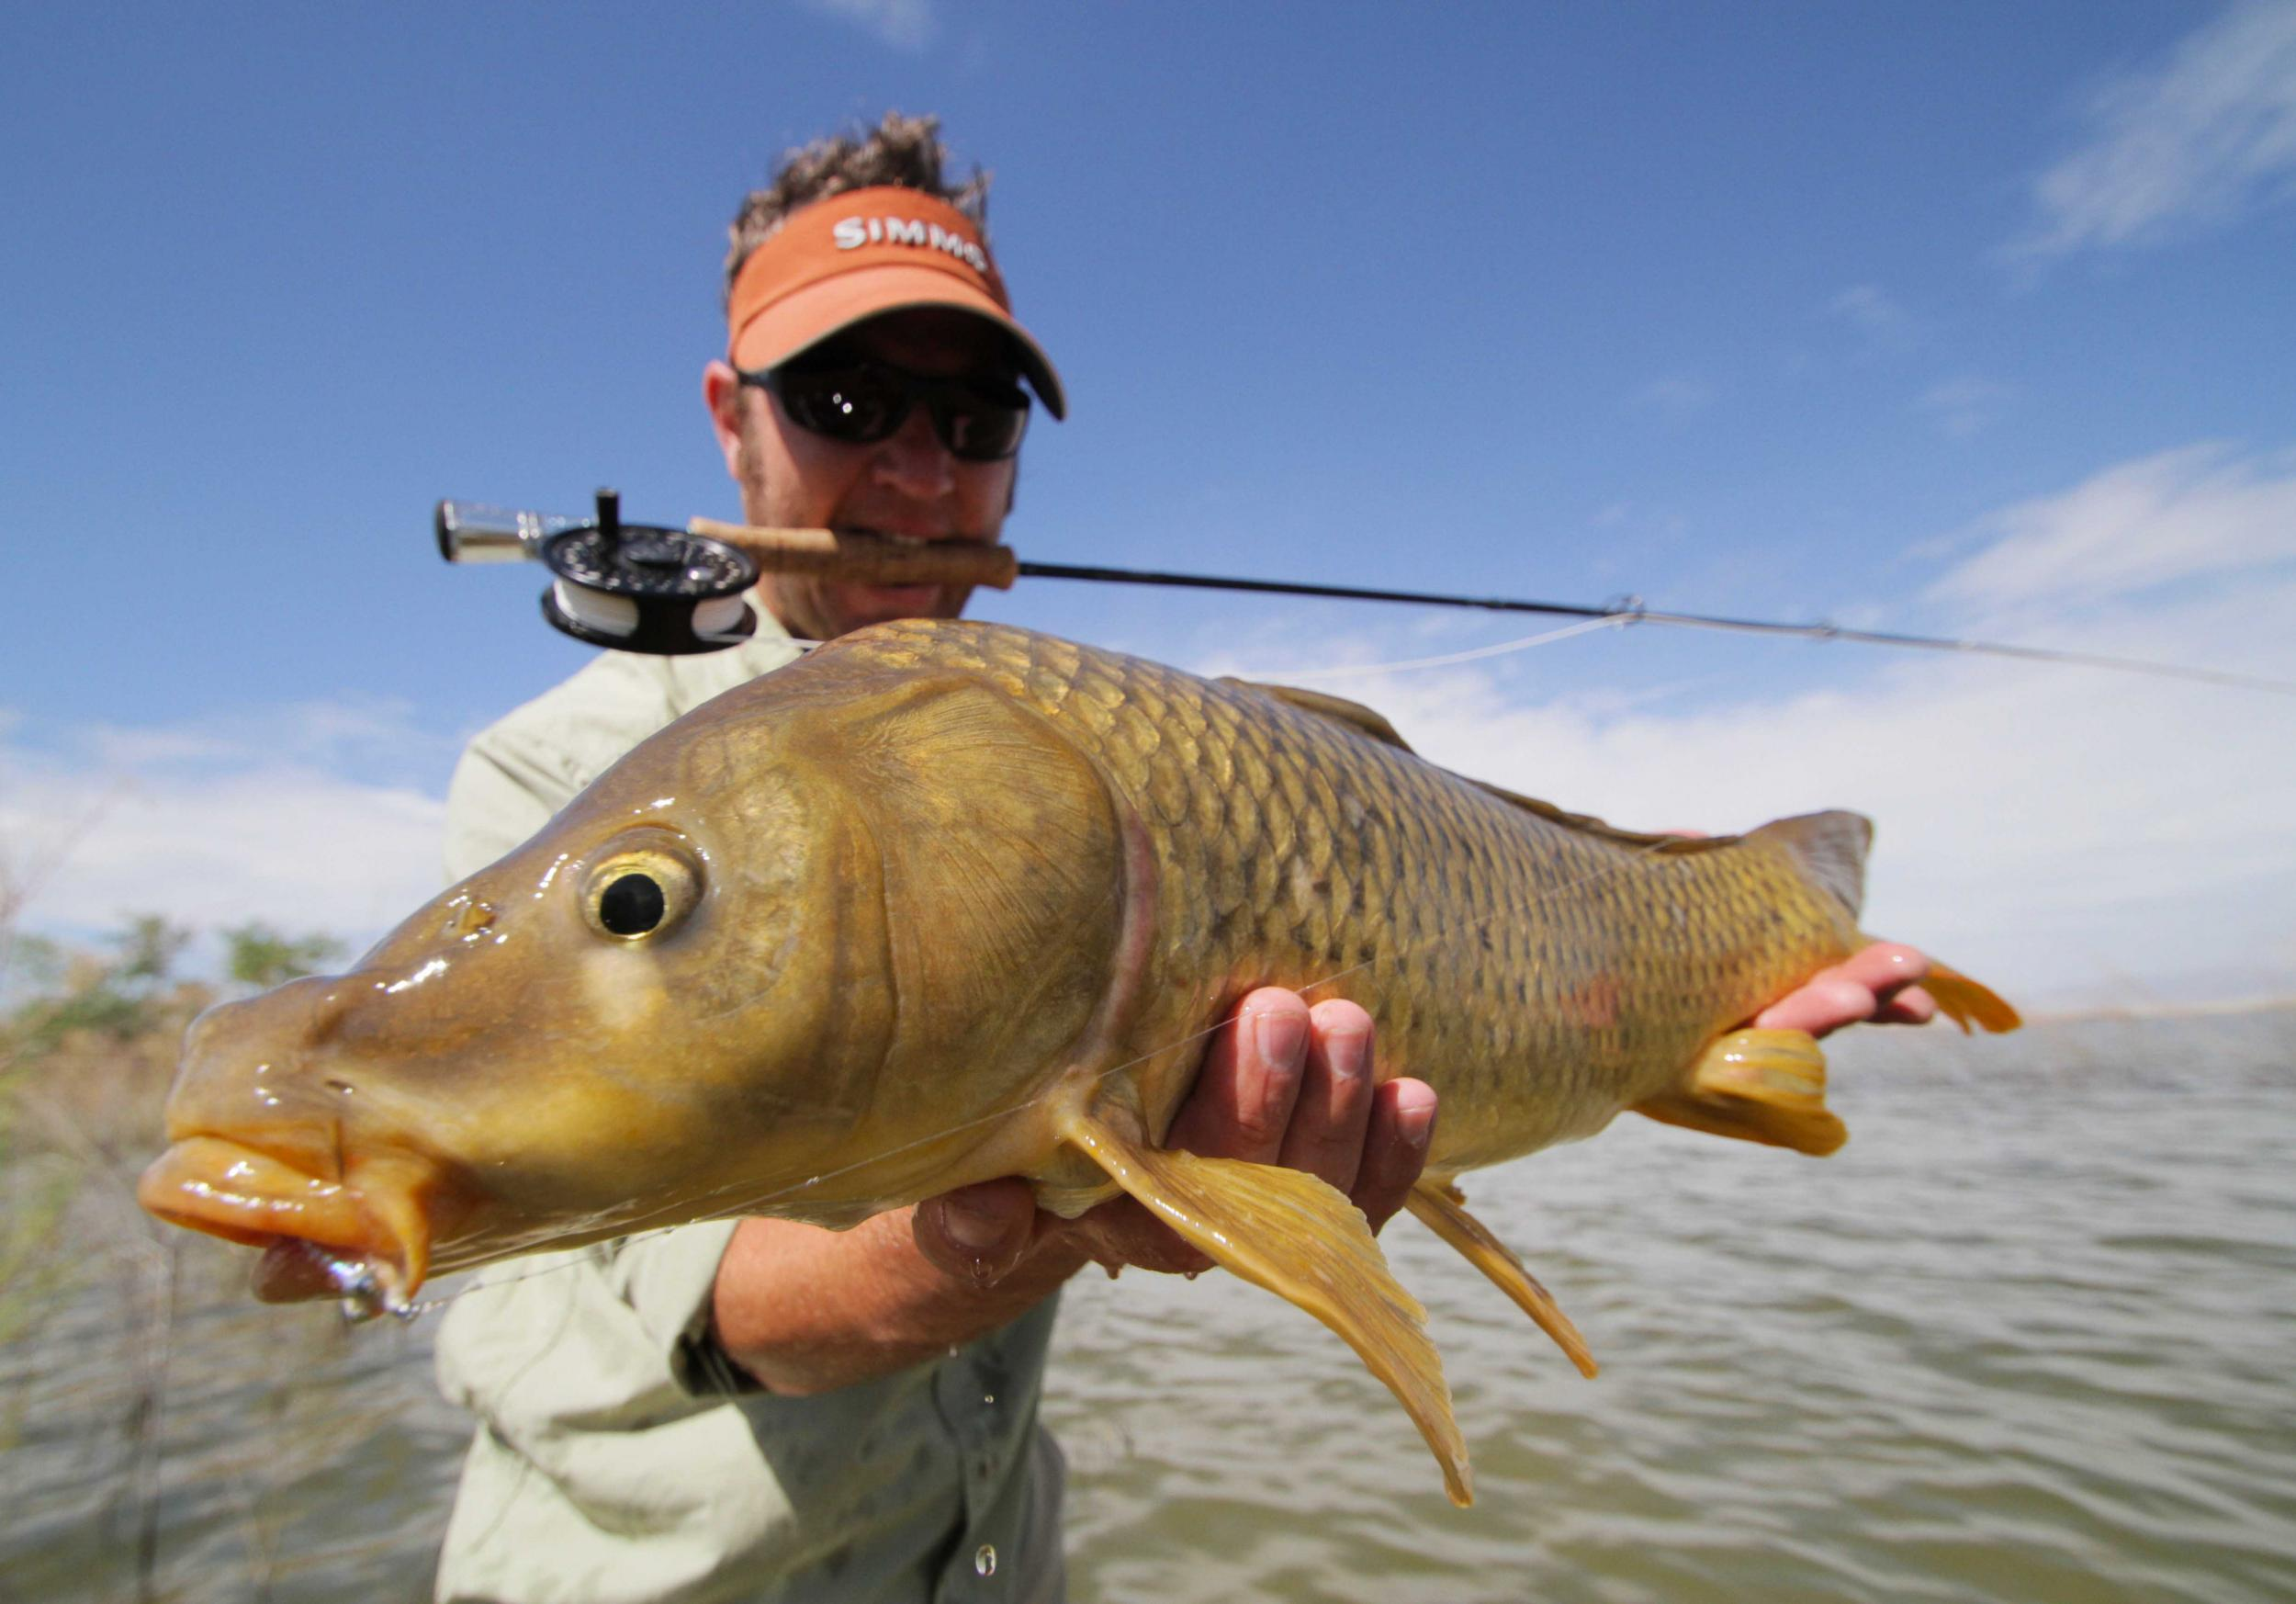 Carp on the Fly Fishing Guide Trip